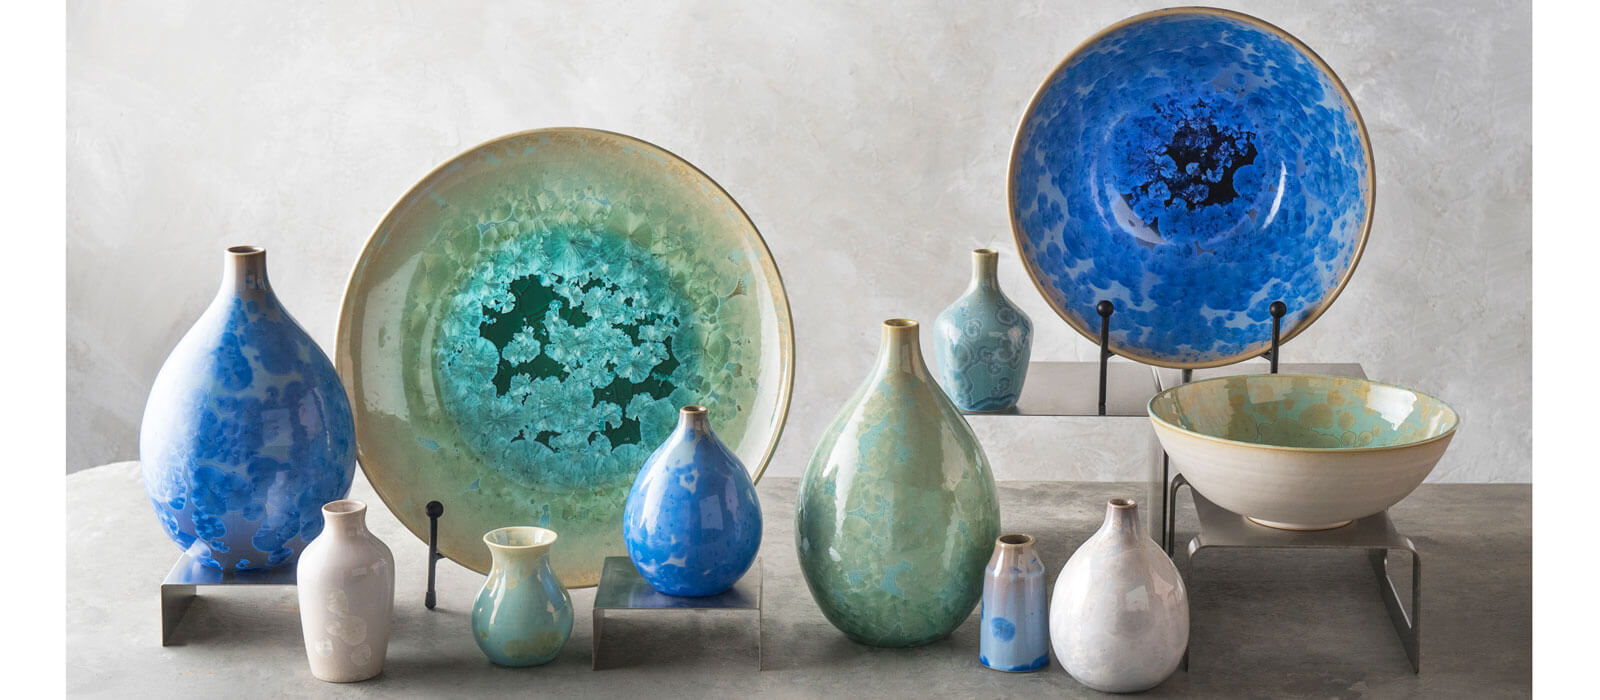 Various Crystalline products in jade and colbalt colors, including vases, bowls and platters